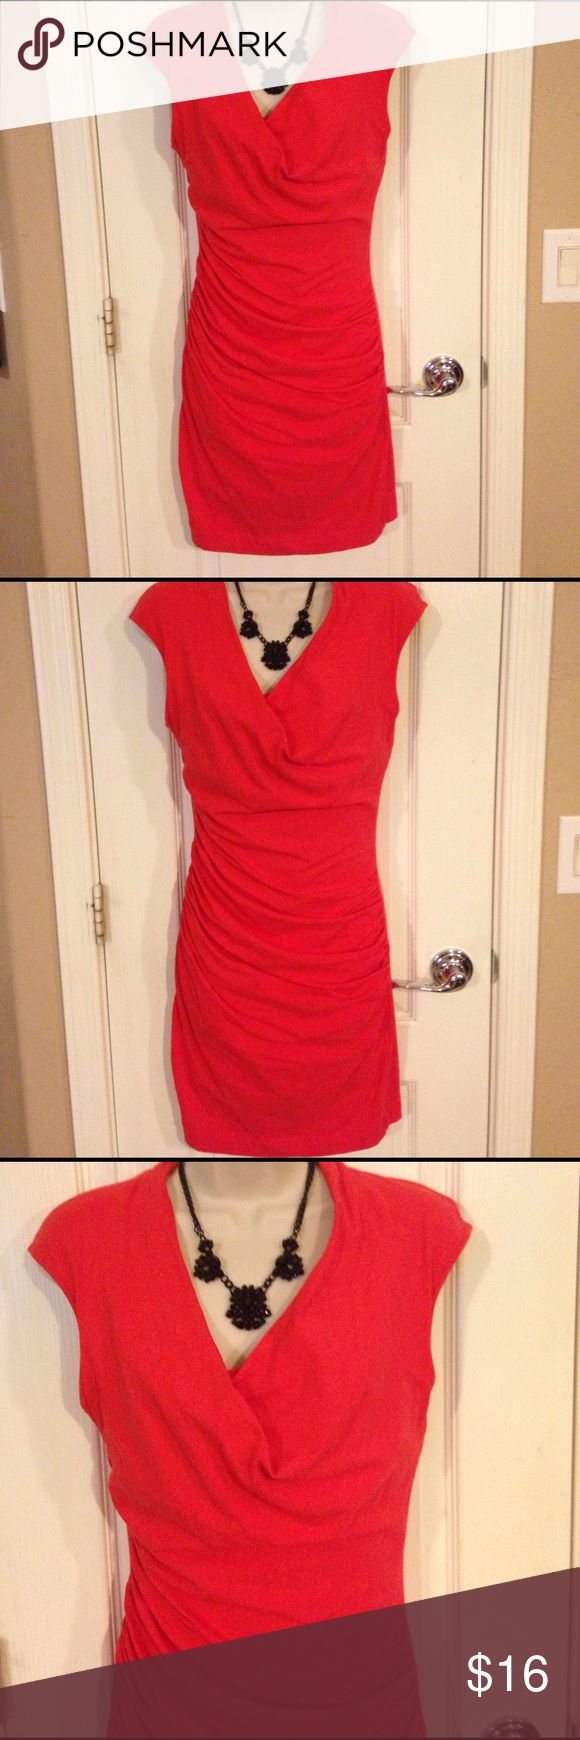 MNG by Mango Reddish Orange - Size Small Outstanding MNG by Mango Reddish Orange Dress - Size Small. This dress has such a find with the rushing and the crisscross top. It is 93% cotton, 7% elastane and washable. This was worn a couple of times it is in great condition. MNG by Mango Dresses